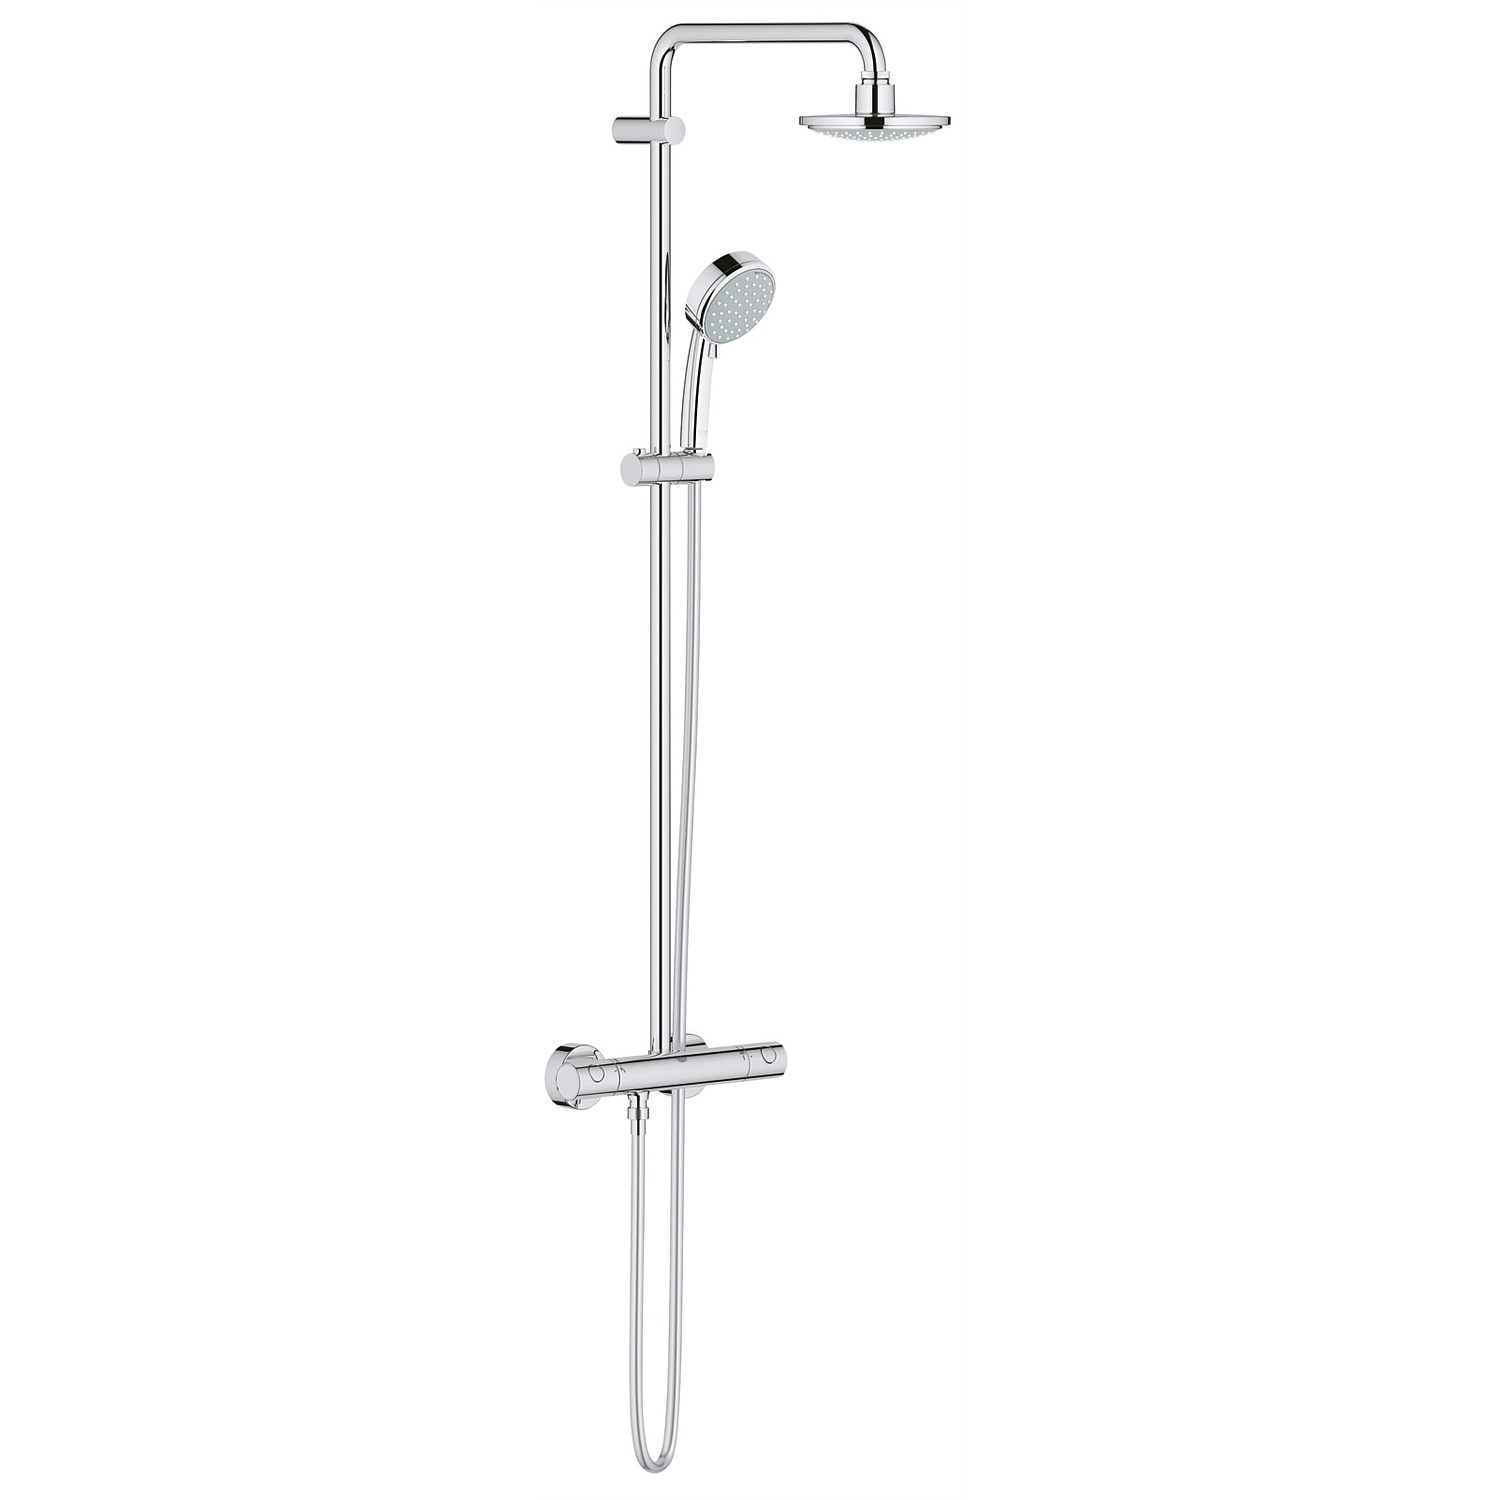 Slide Showers - Grohe Tempesta Shower System with Thermostatic Control